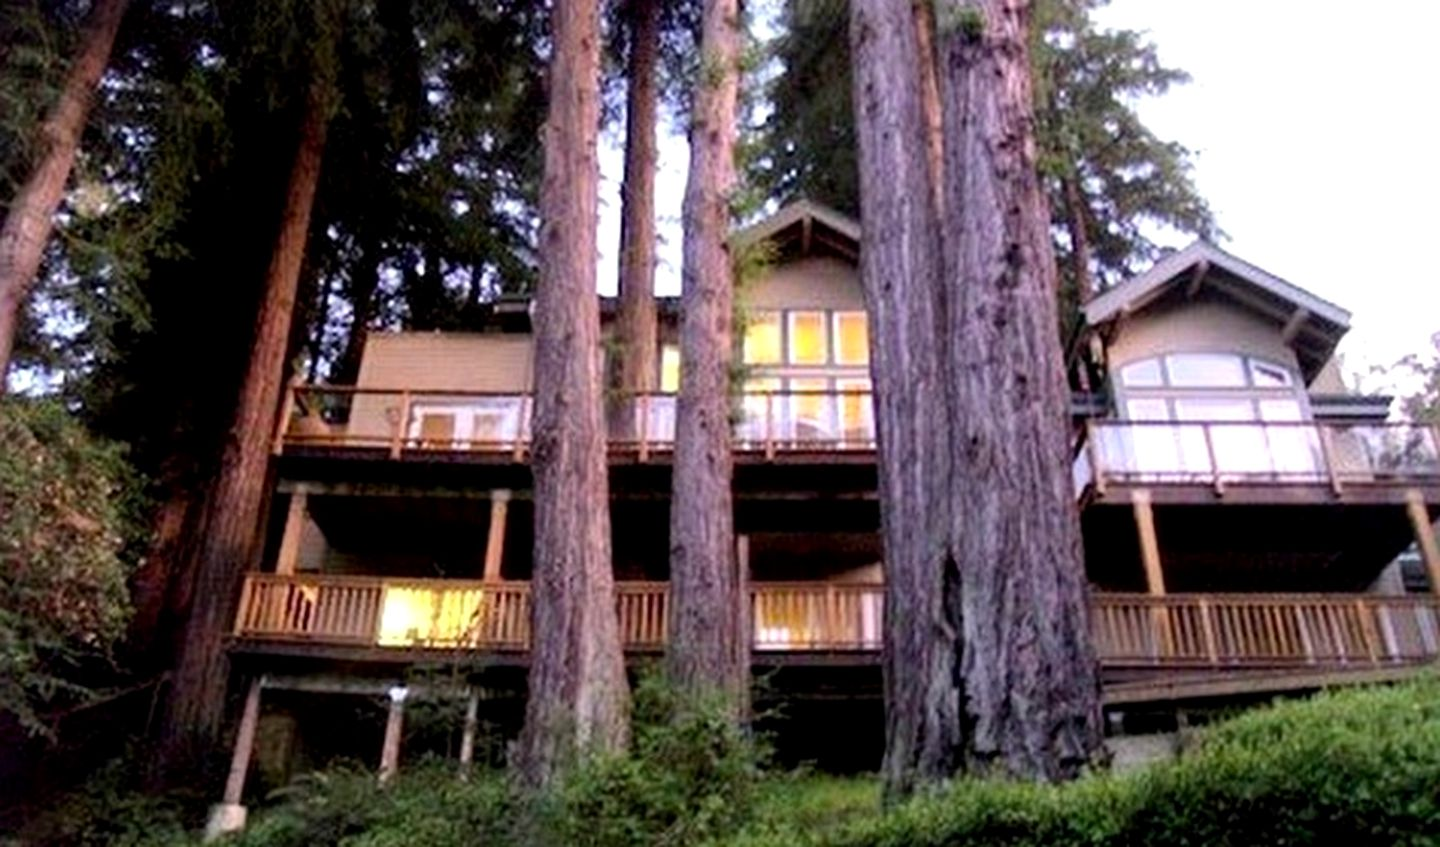 Tree Houses (Mill Valley, California, United States)